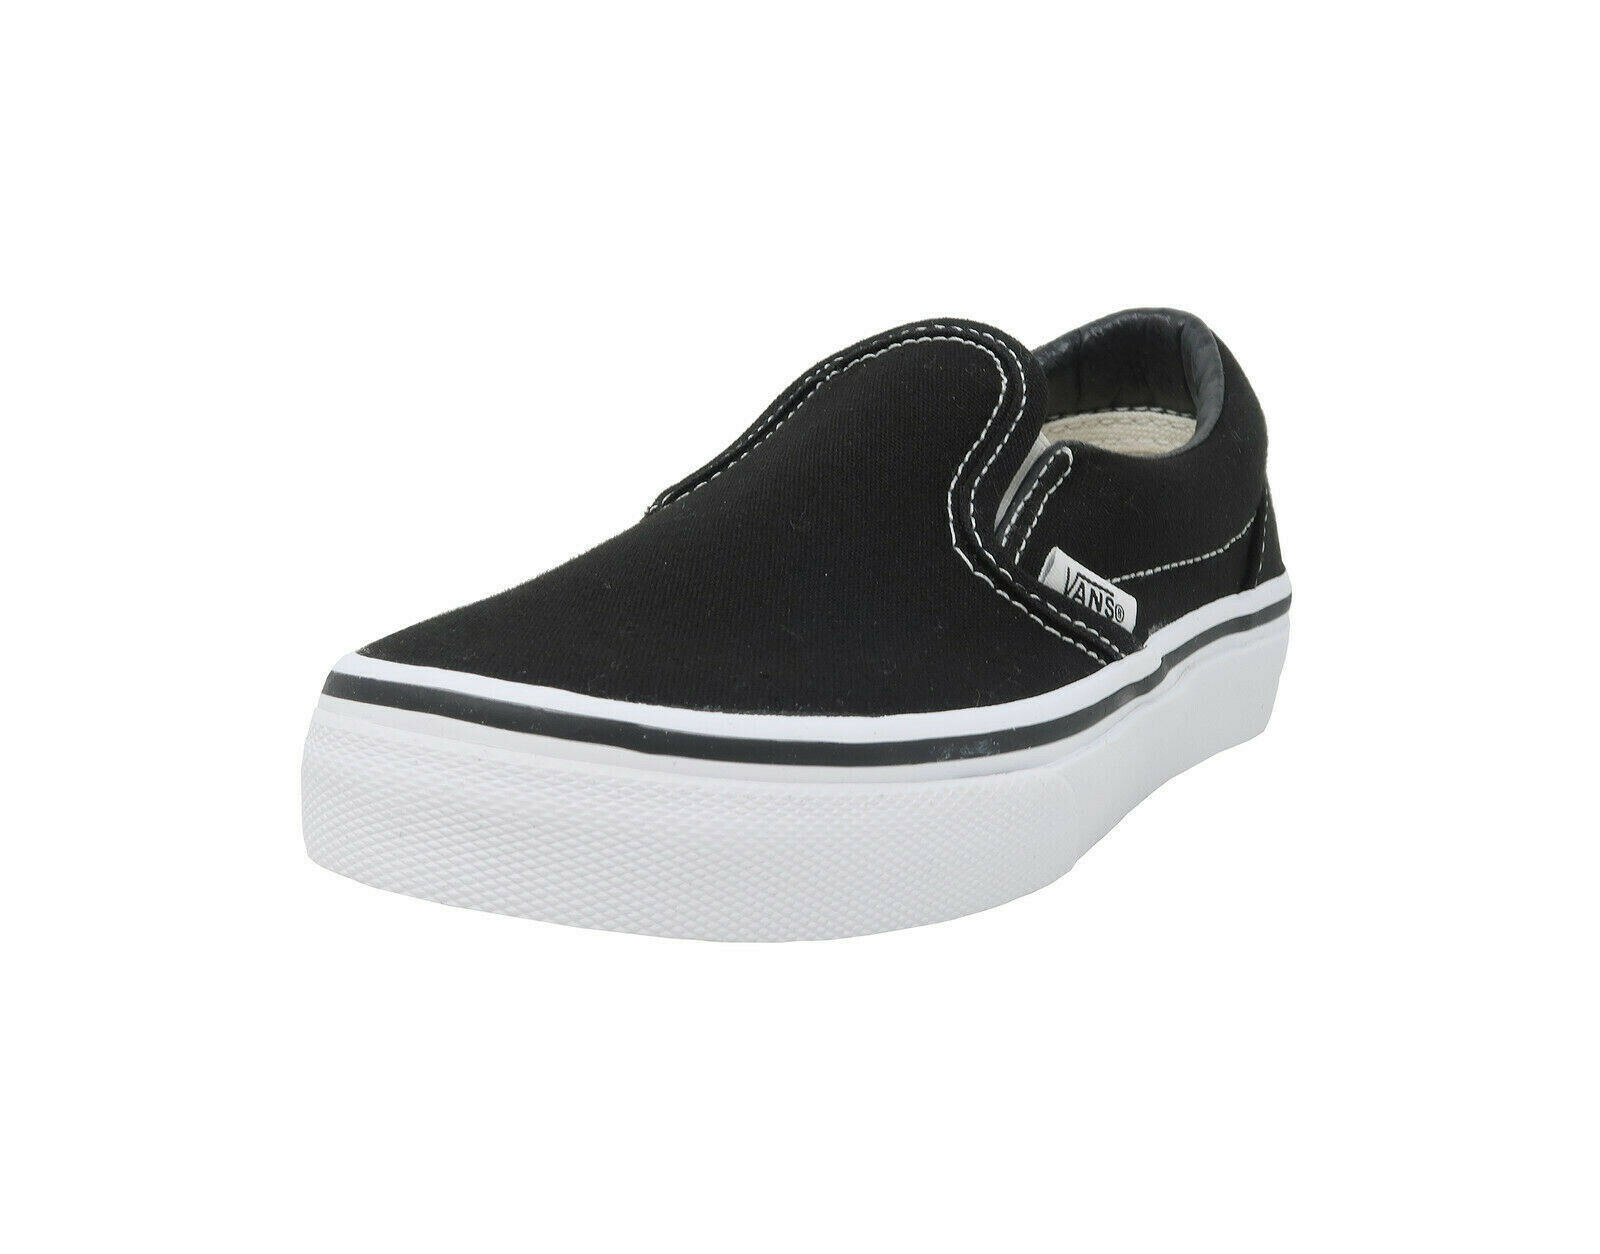 vans slip on boys shoes